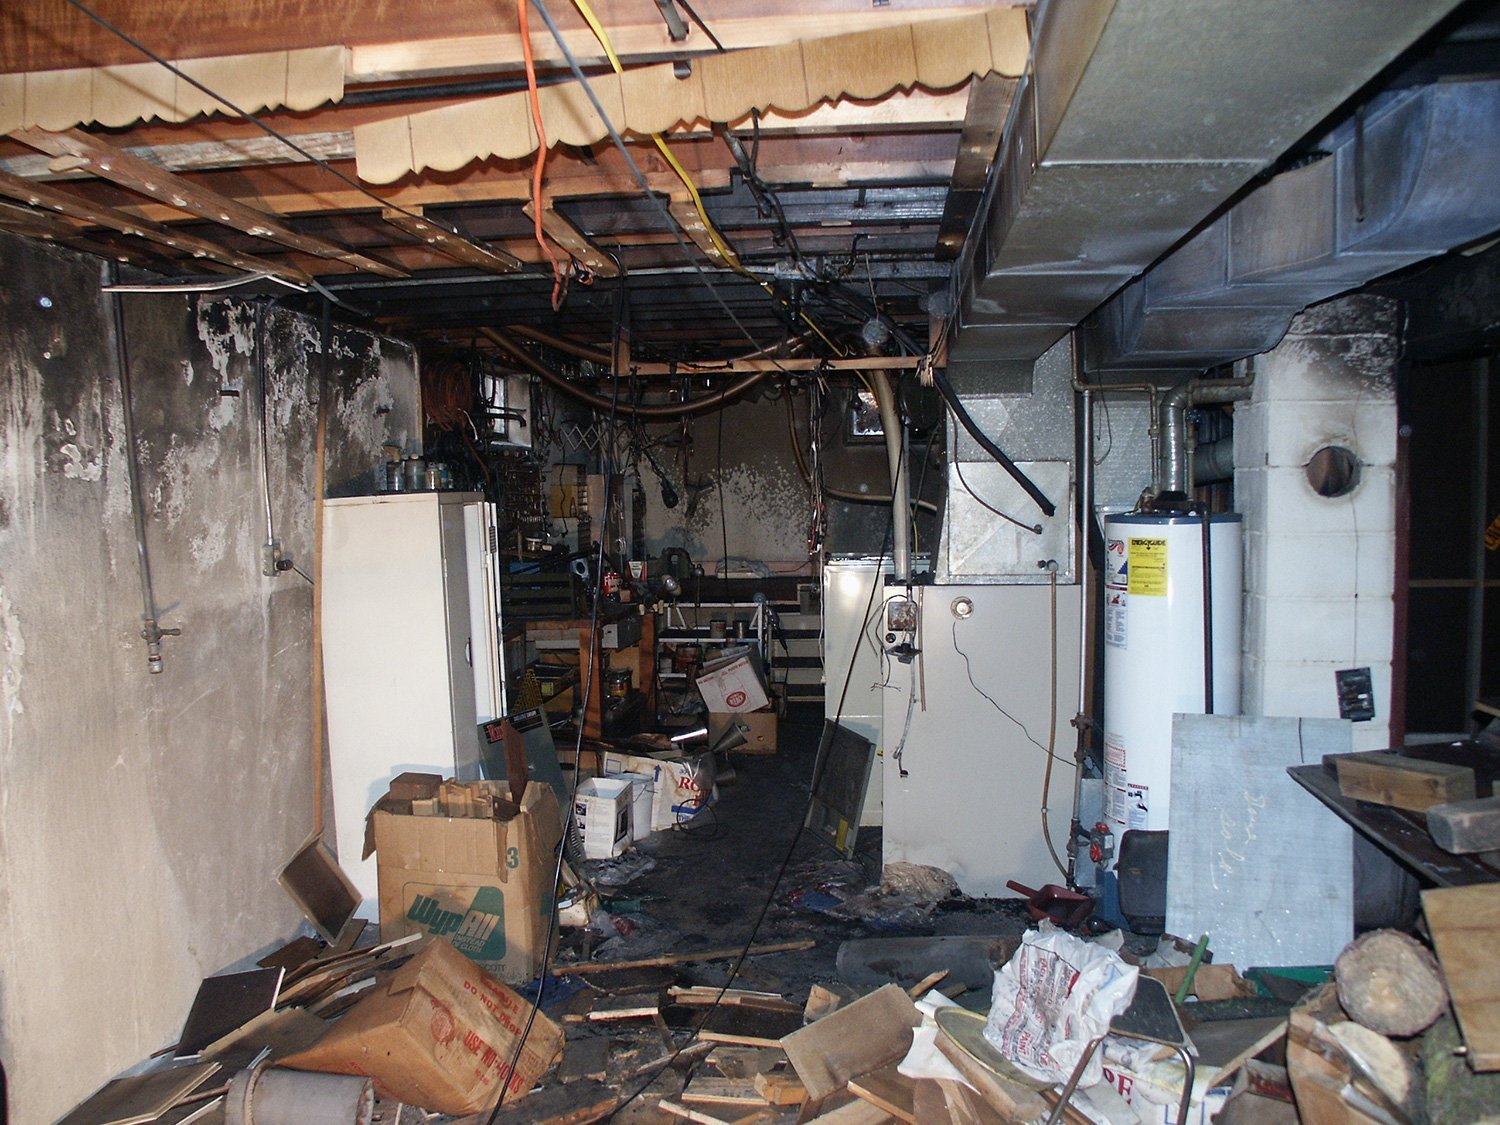 damaged furnace room of a residential house